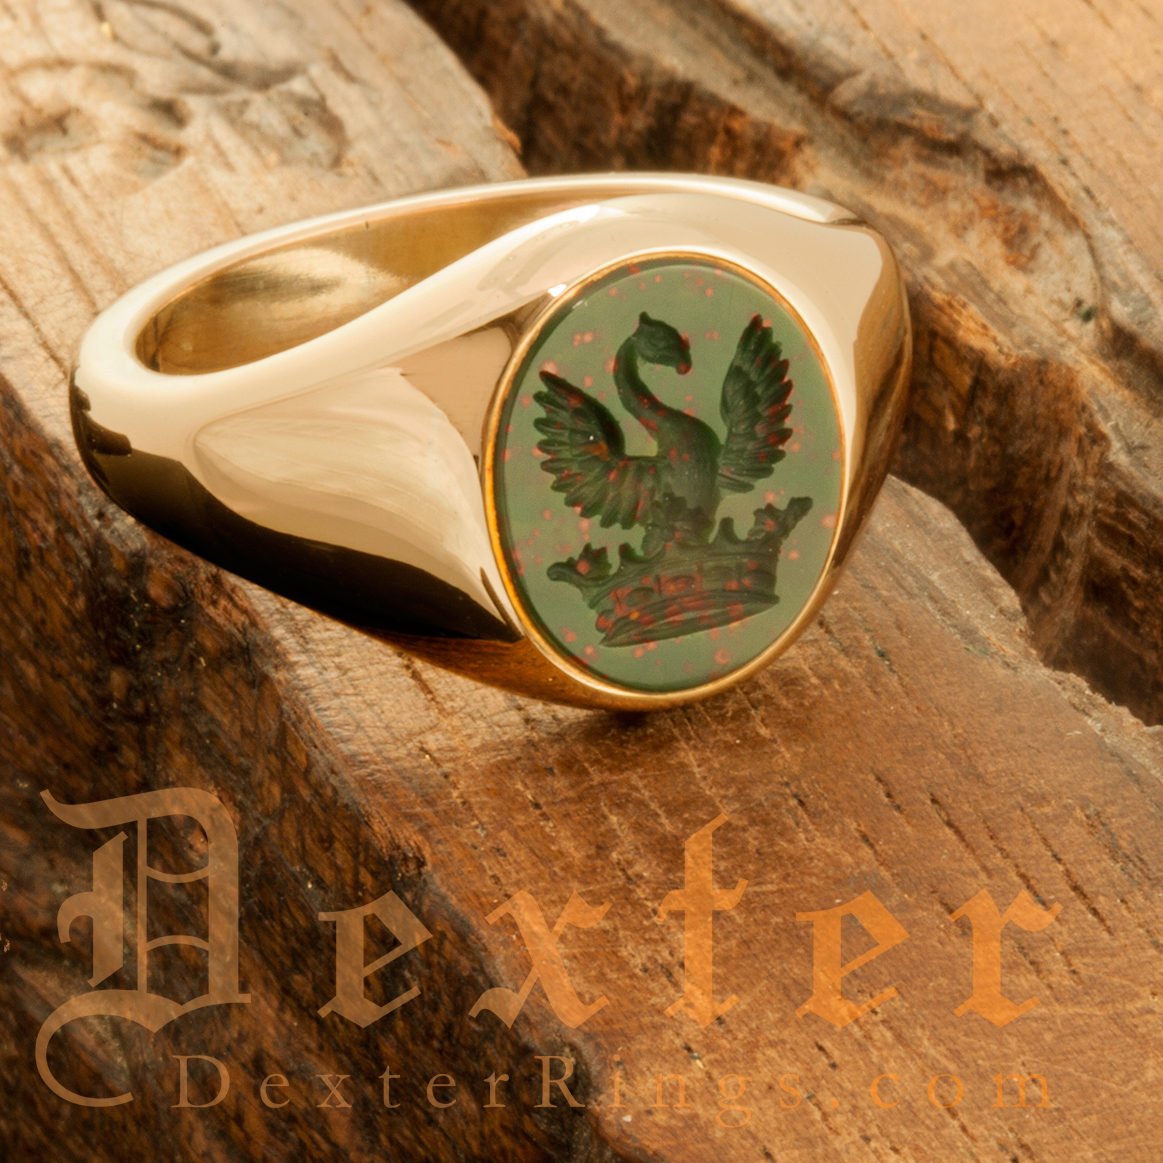 Swan Out Of Ducal Coronet Crest Bloodstone Signet Ring